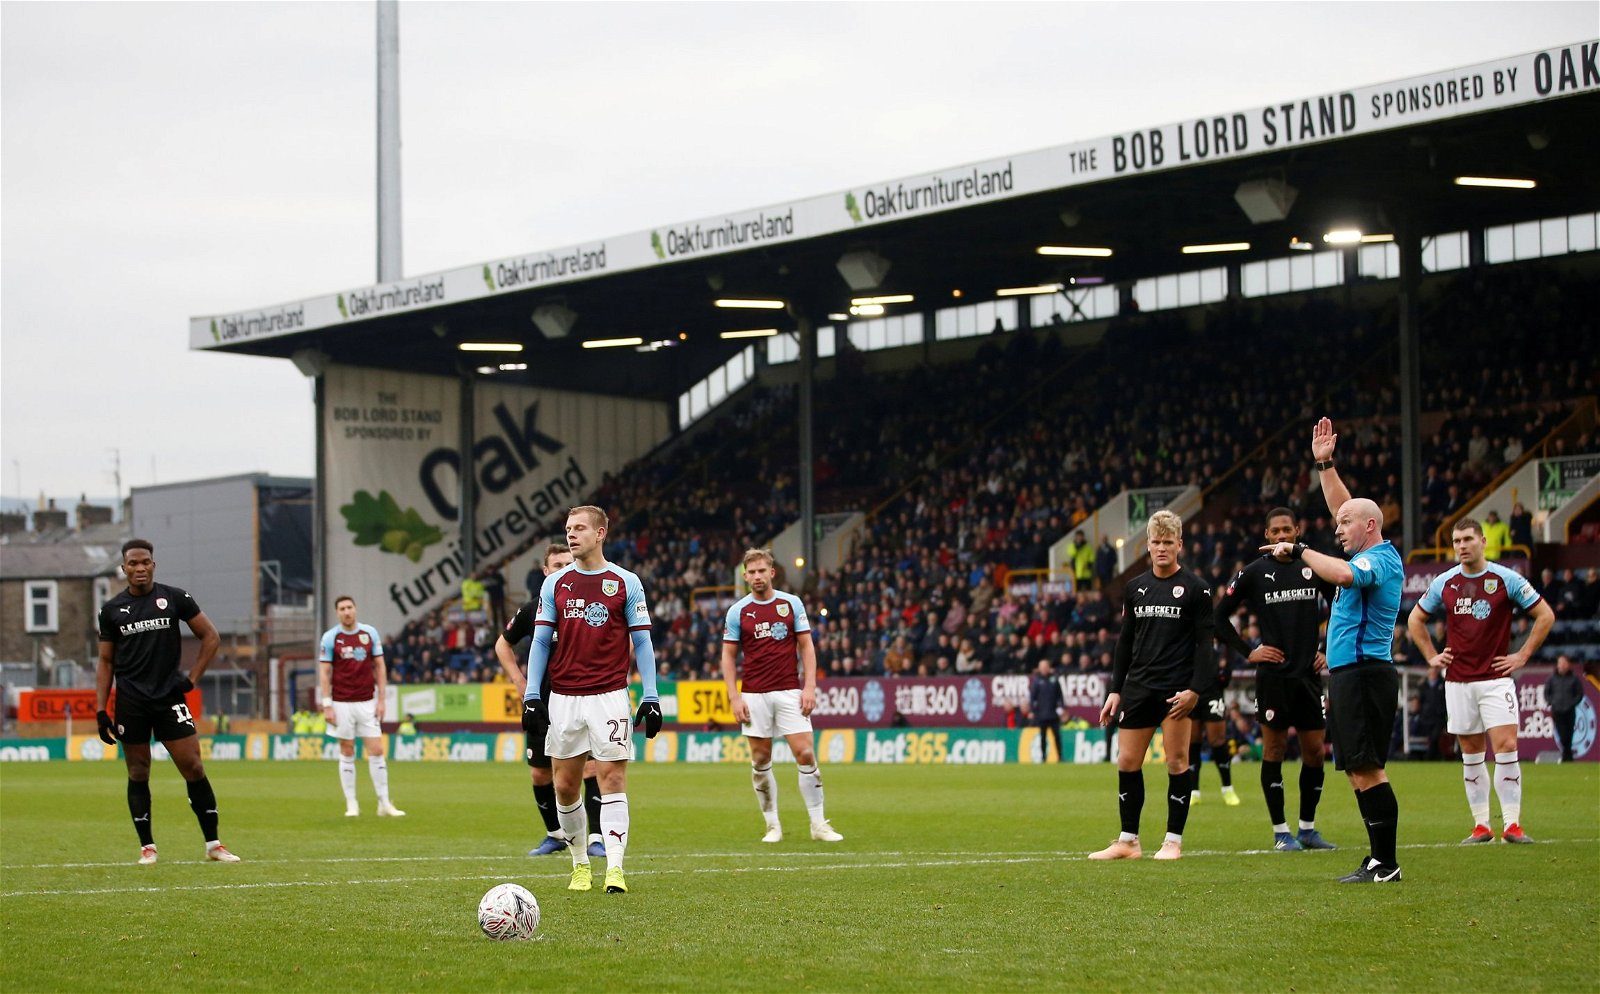 Burnley's Matej Vydra waits to take a penalty which is later overturned by VAR